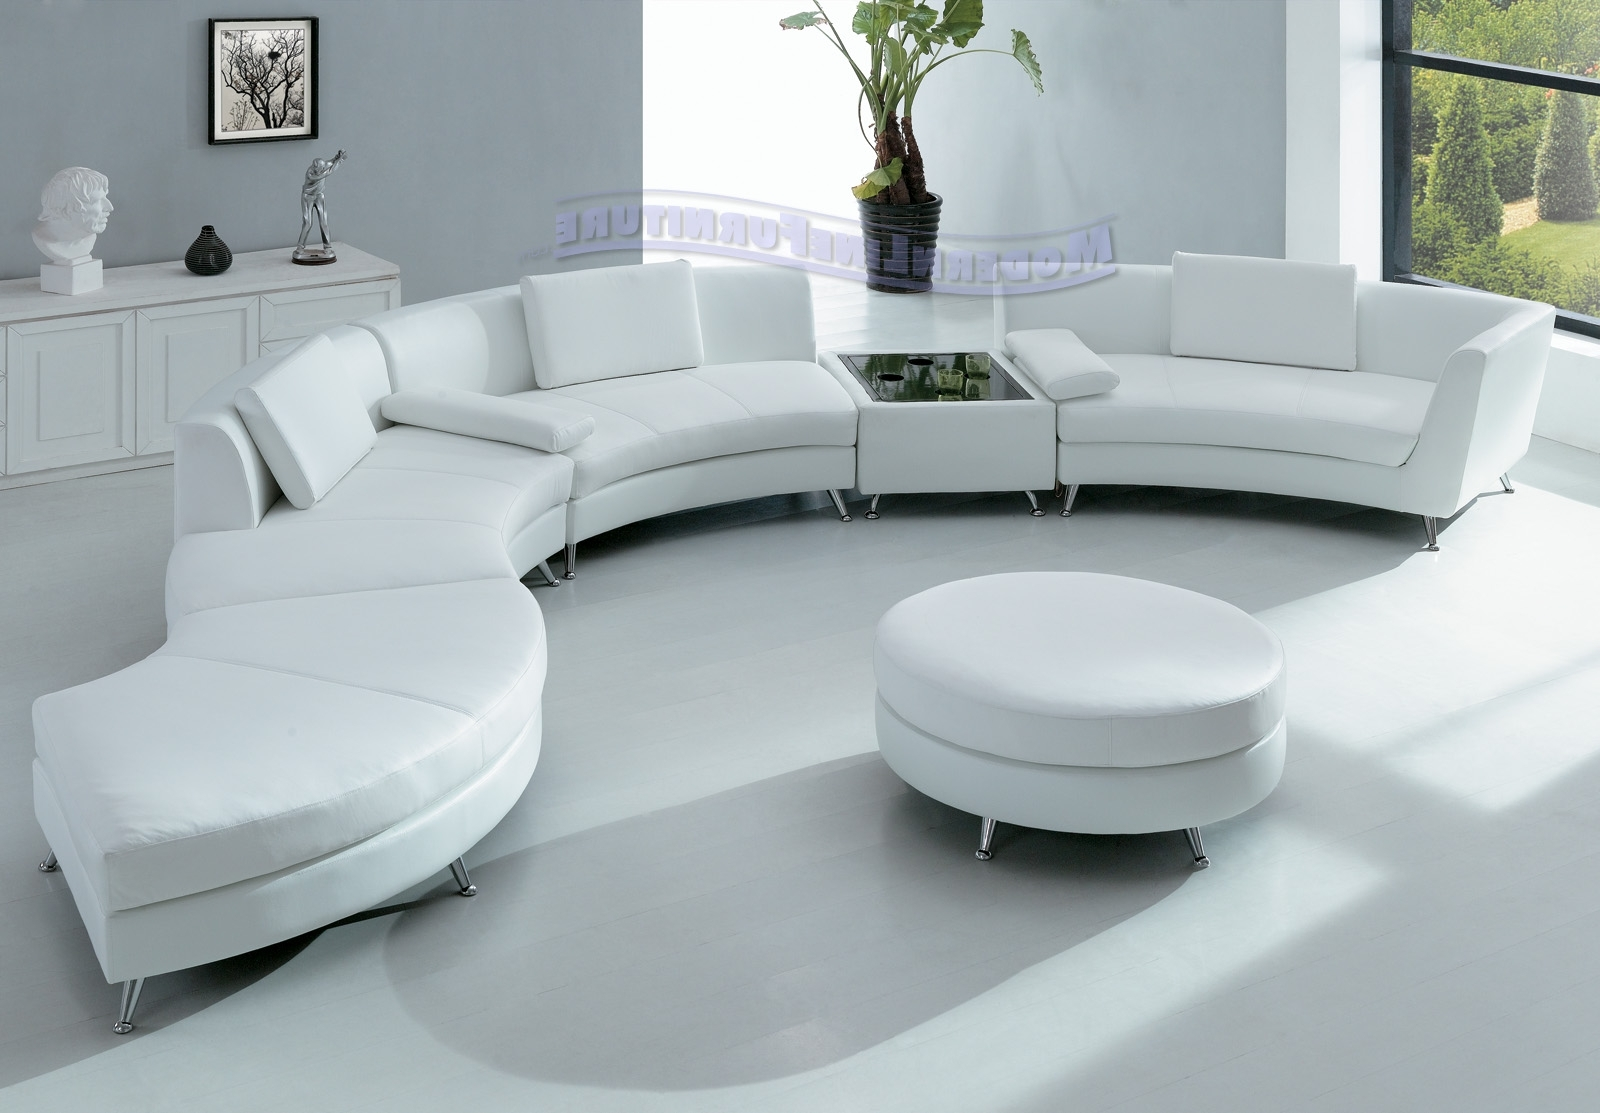 2019 Coffee Table : Couches For Sale Ottawa Living Room Furniture With Regard To Sectional Sofas At Brampton (View 3 of 20)